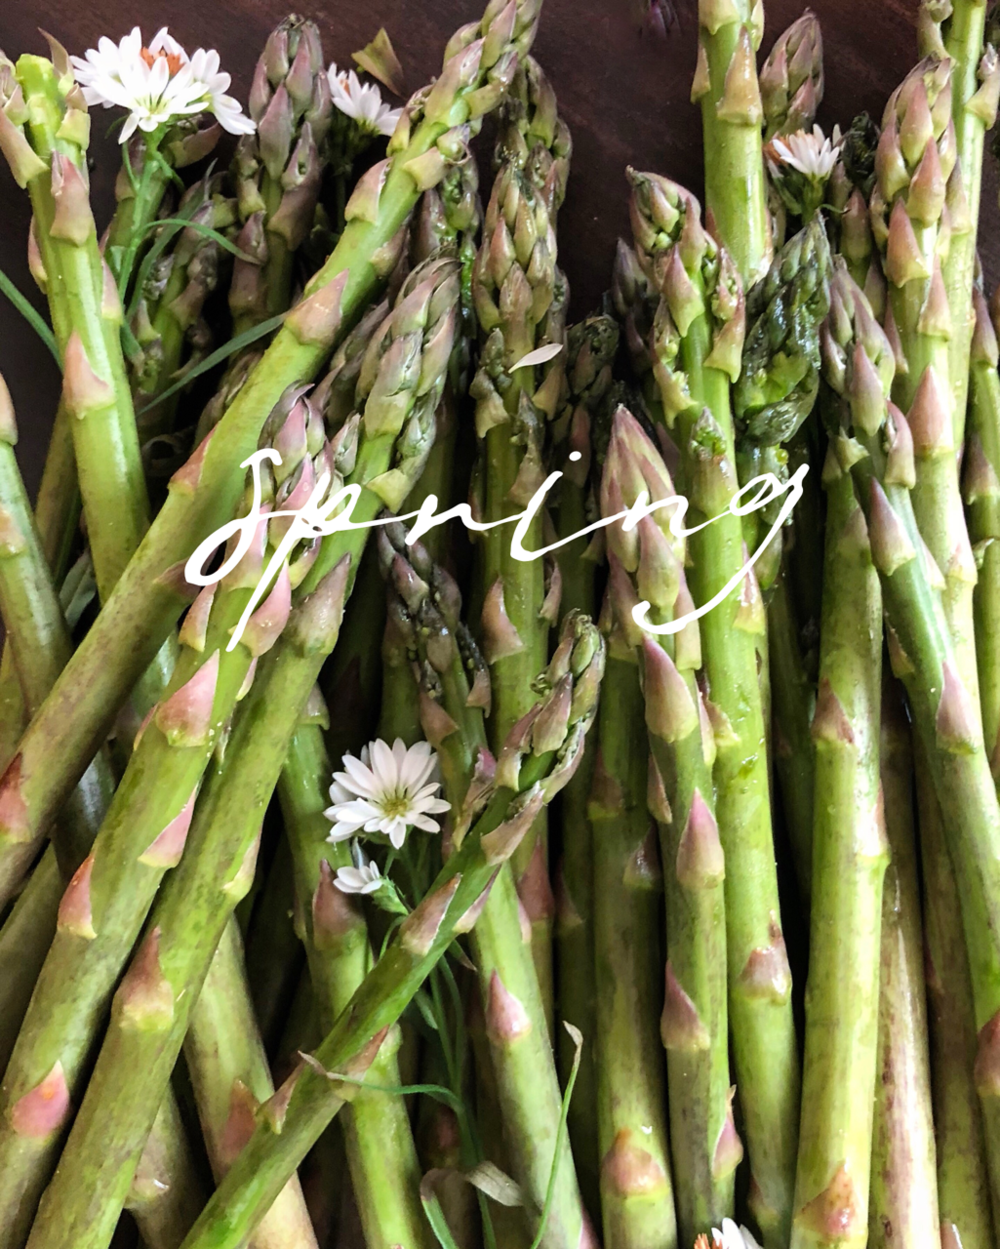 What's In Season — - My personal favorite ingredients to use during spring:Asparagus, Leeks, Peas, Artichokes, Carrots, Strawberries, Ramps, Beets, Cucumbers, Cherries, Rhubarb & Arugula